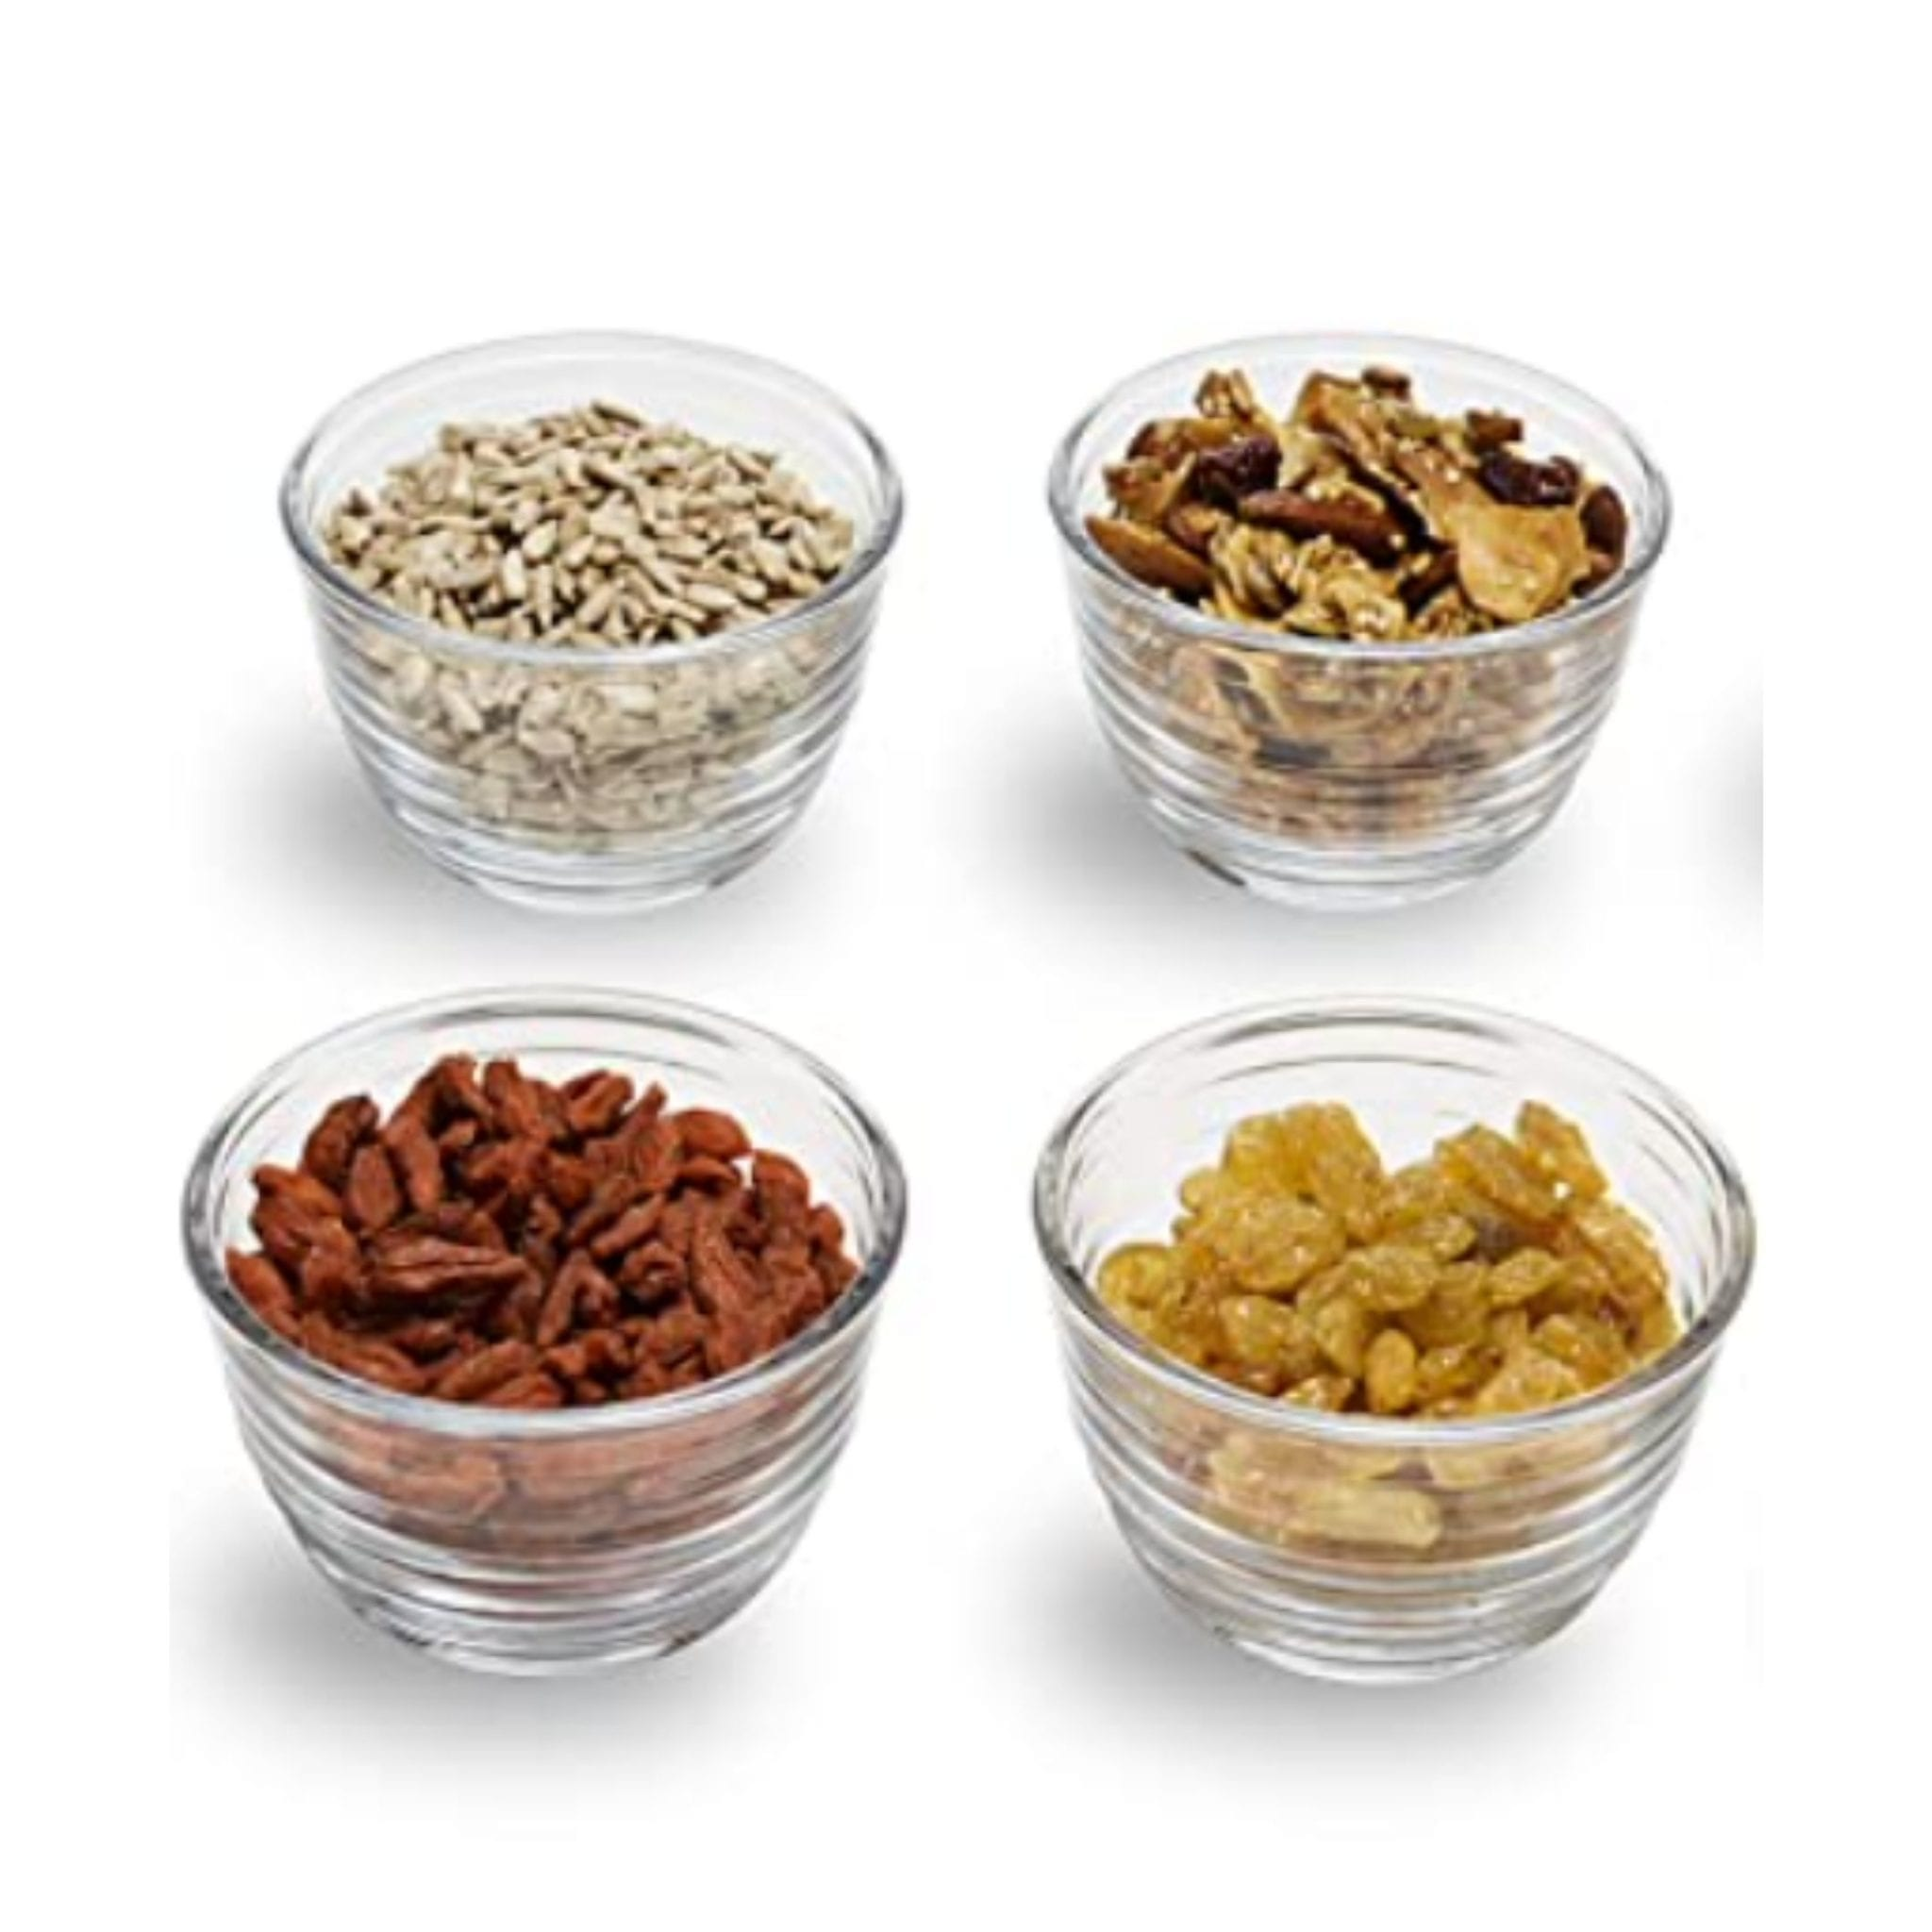 Small Glass Bowls with Lids